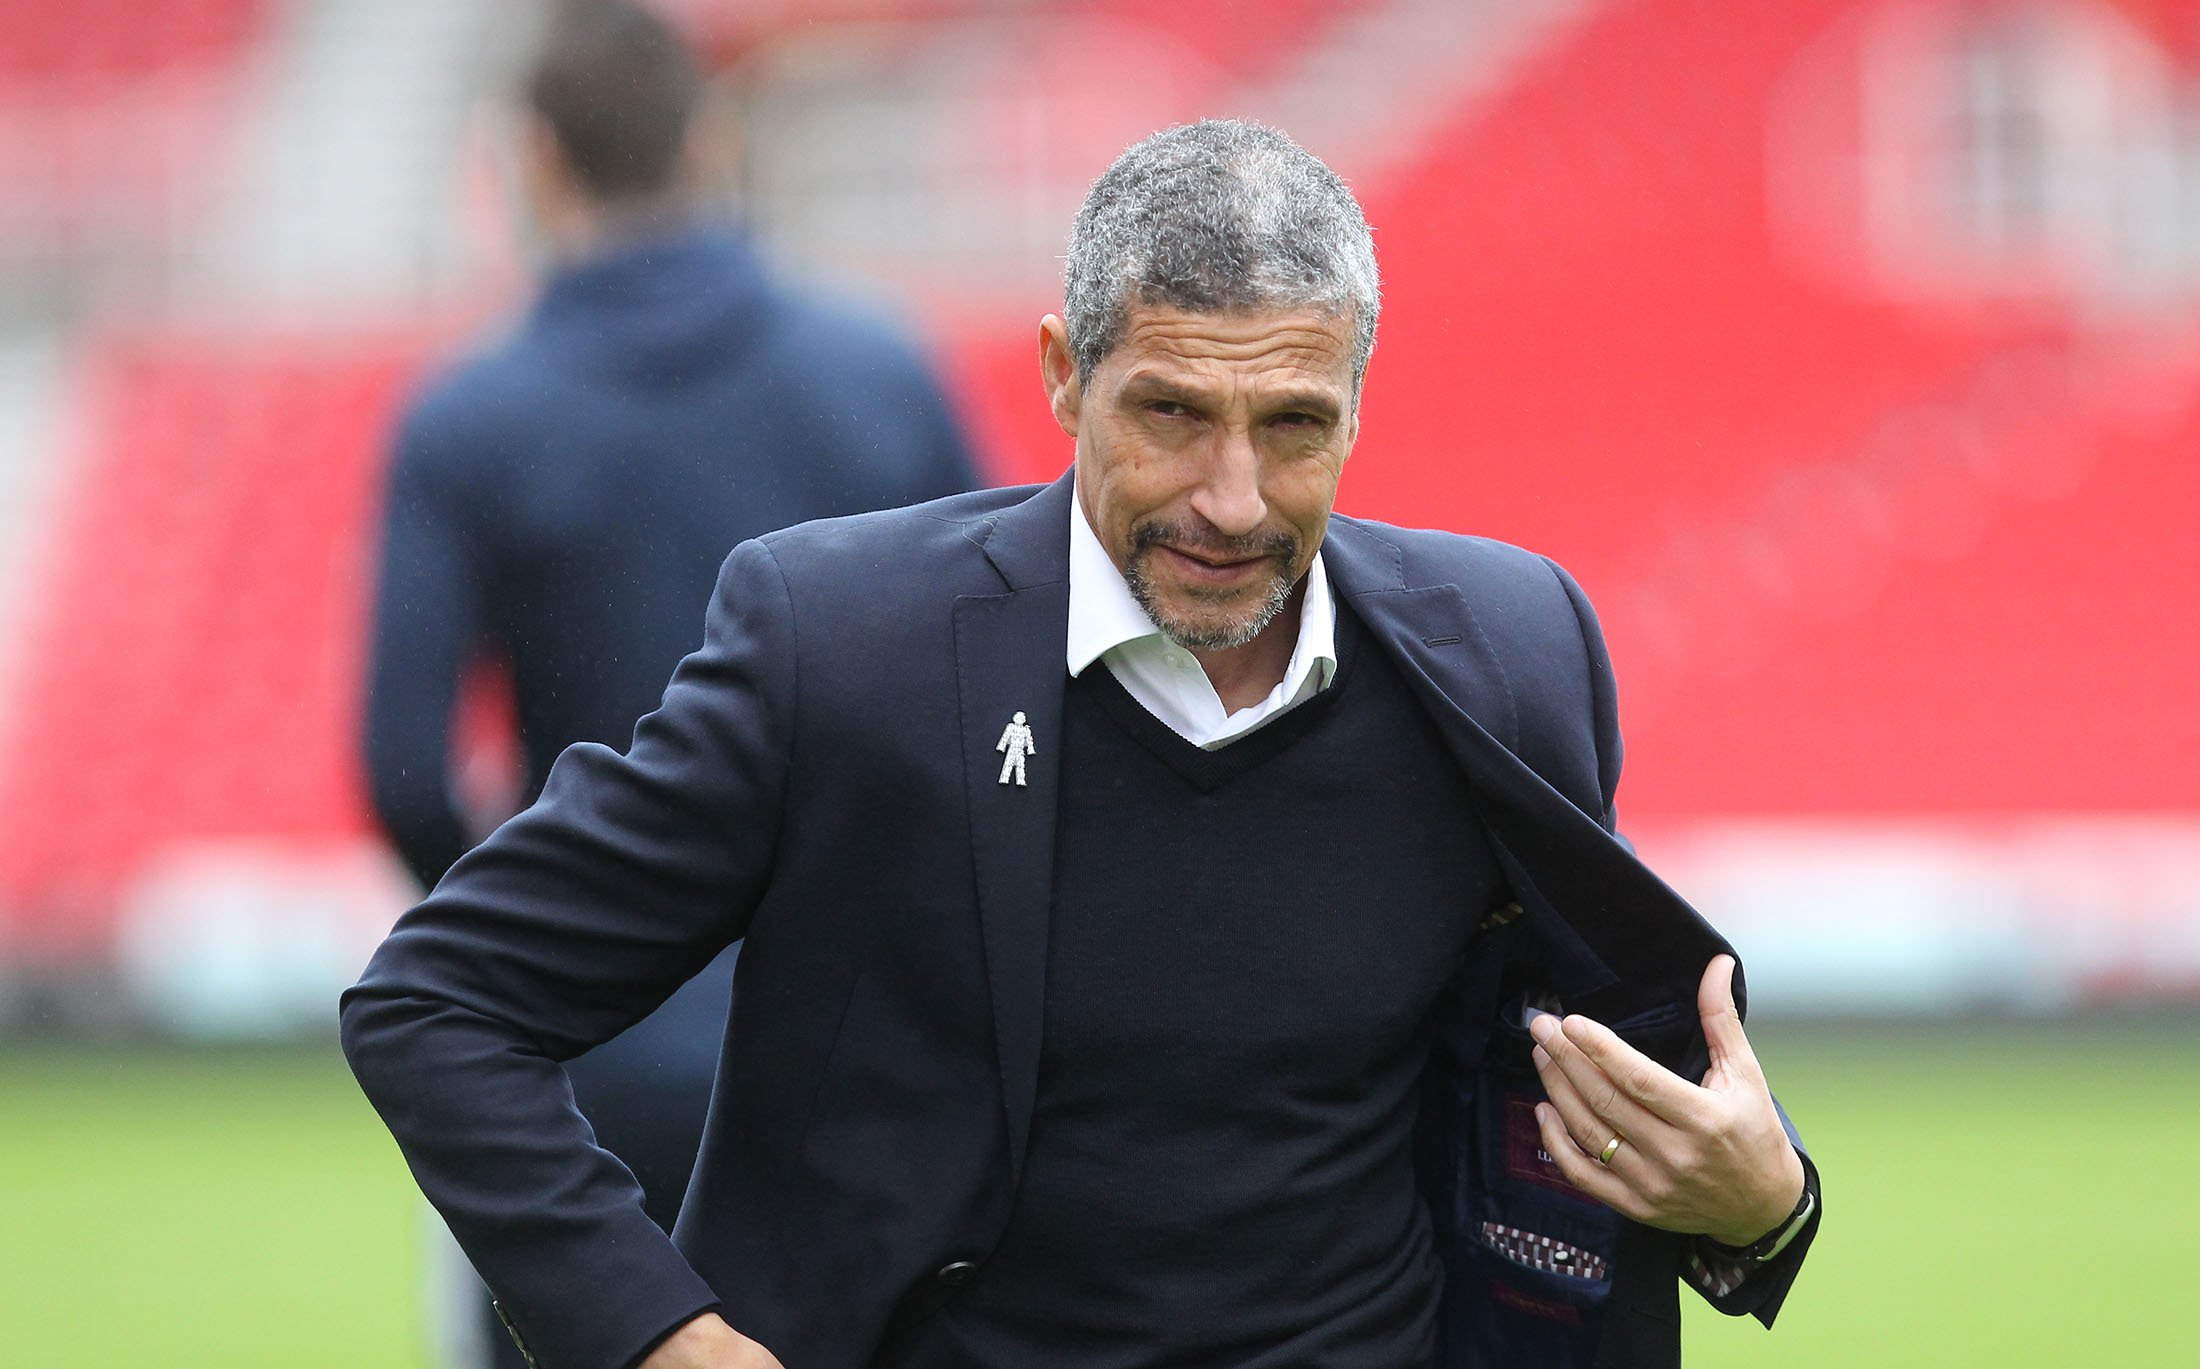 Chris Hughton wants Albion to kill off teams once they go ahead